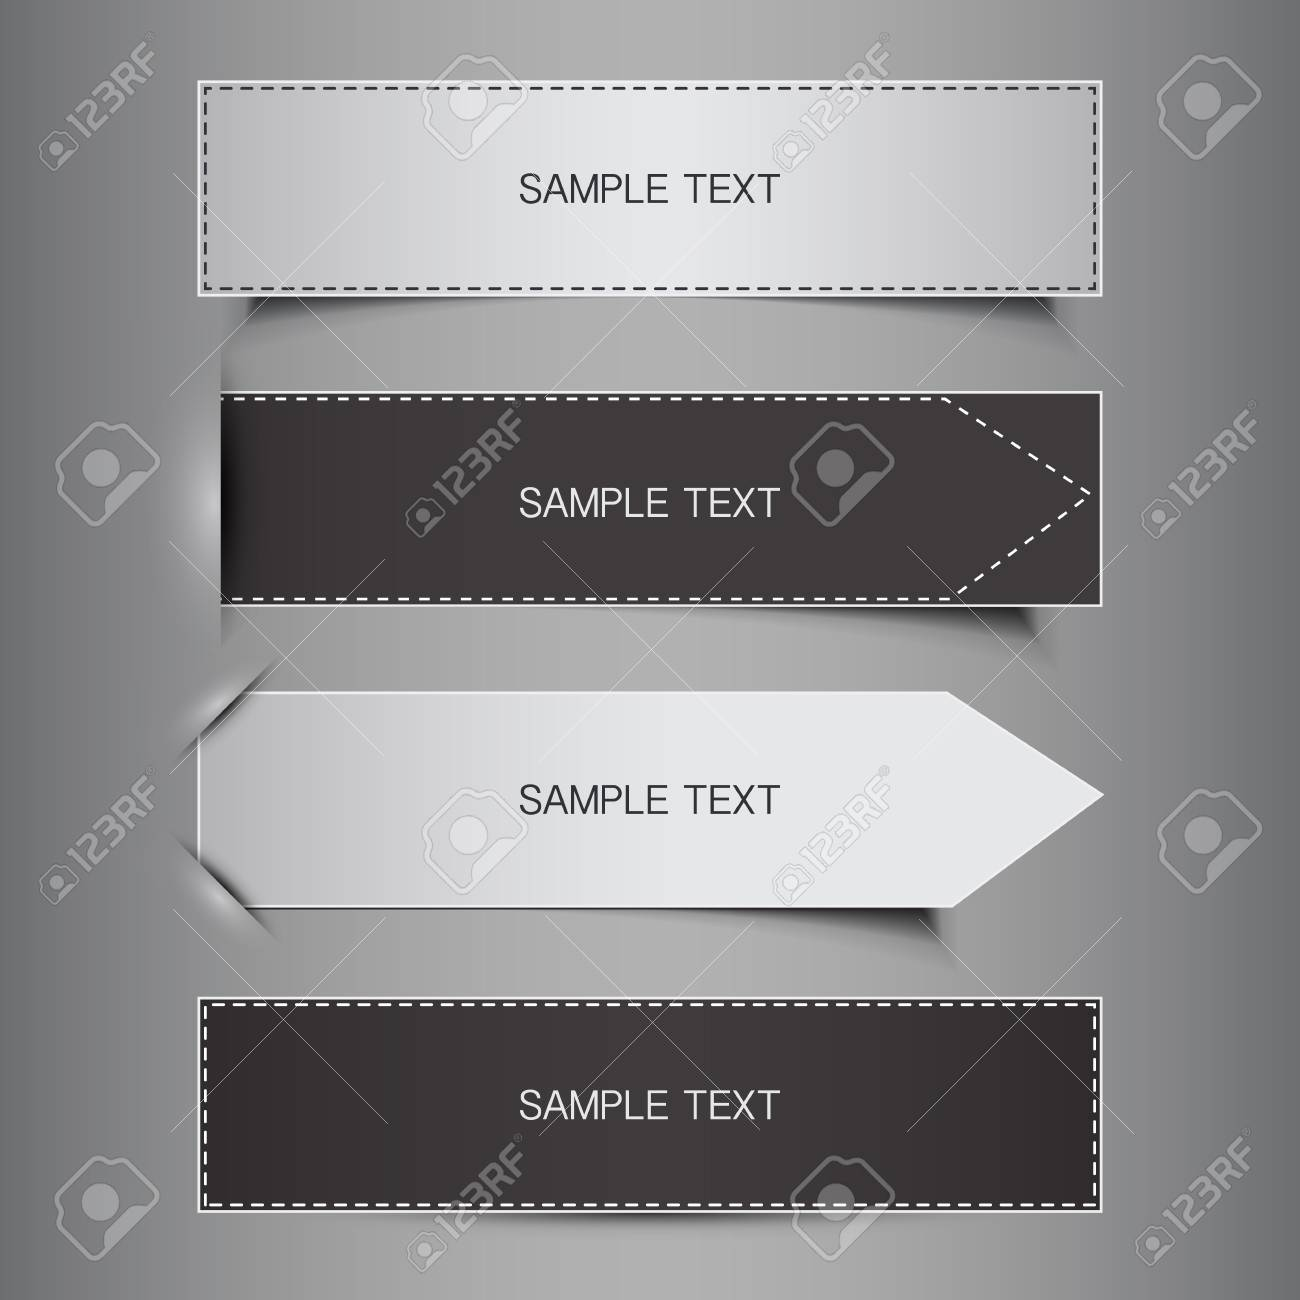 Tag, Label or Banner Designs Stock Vector - 17036232